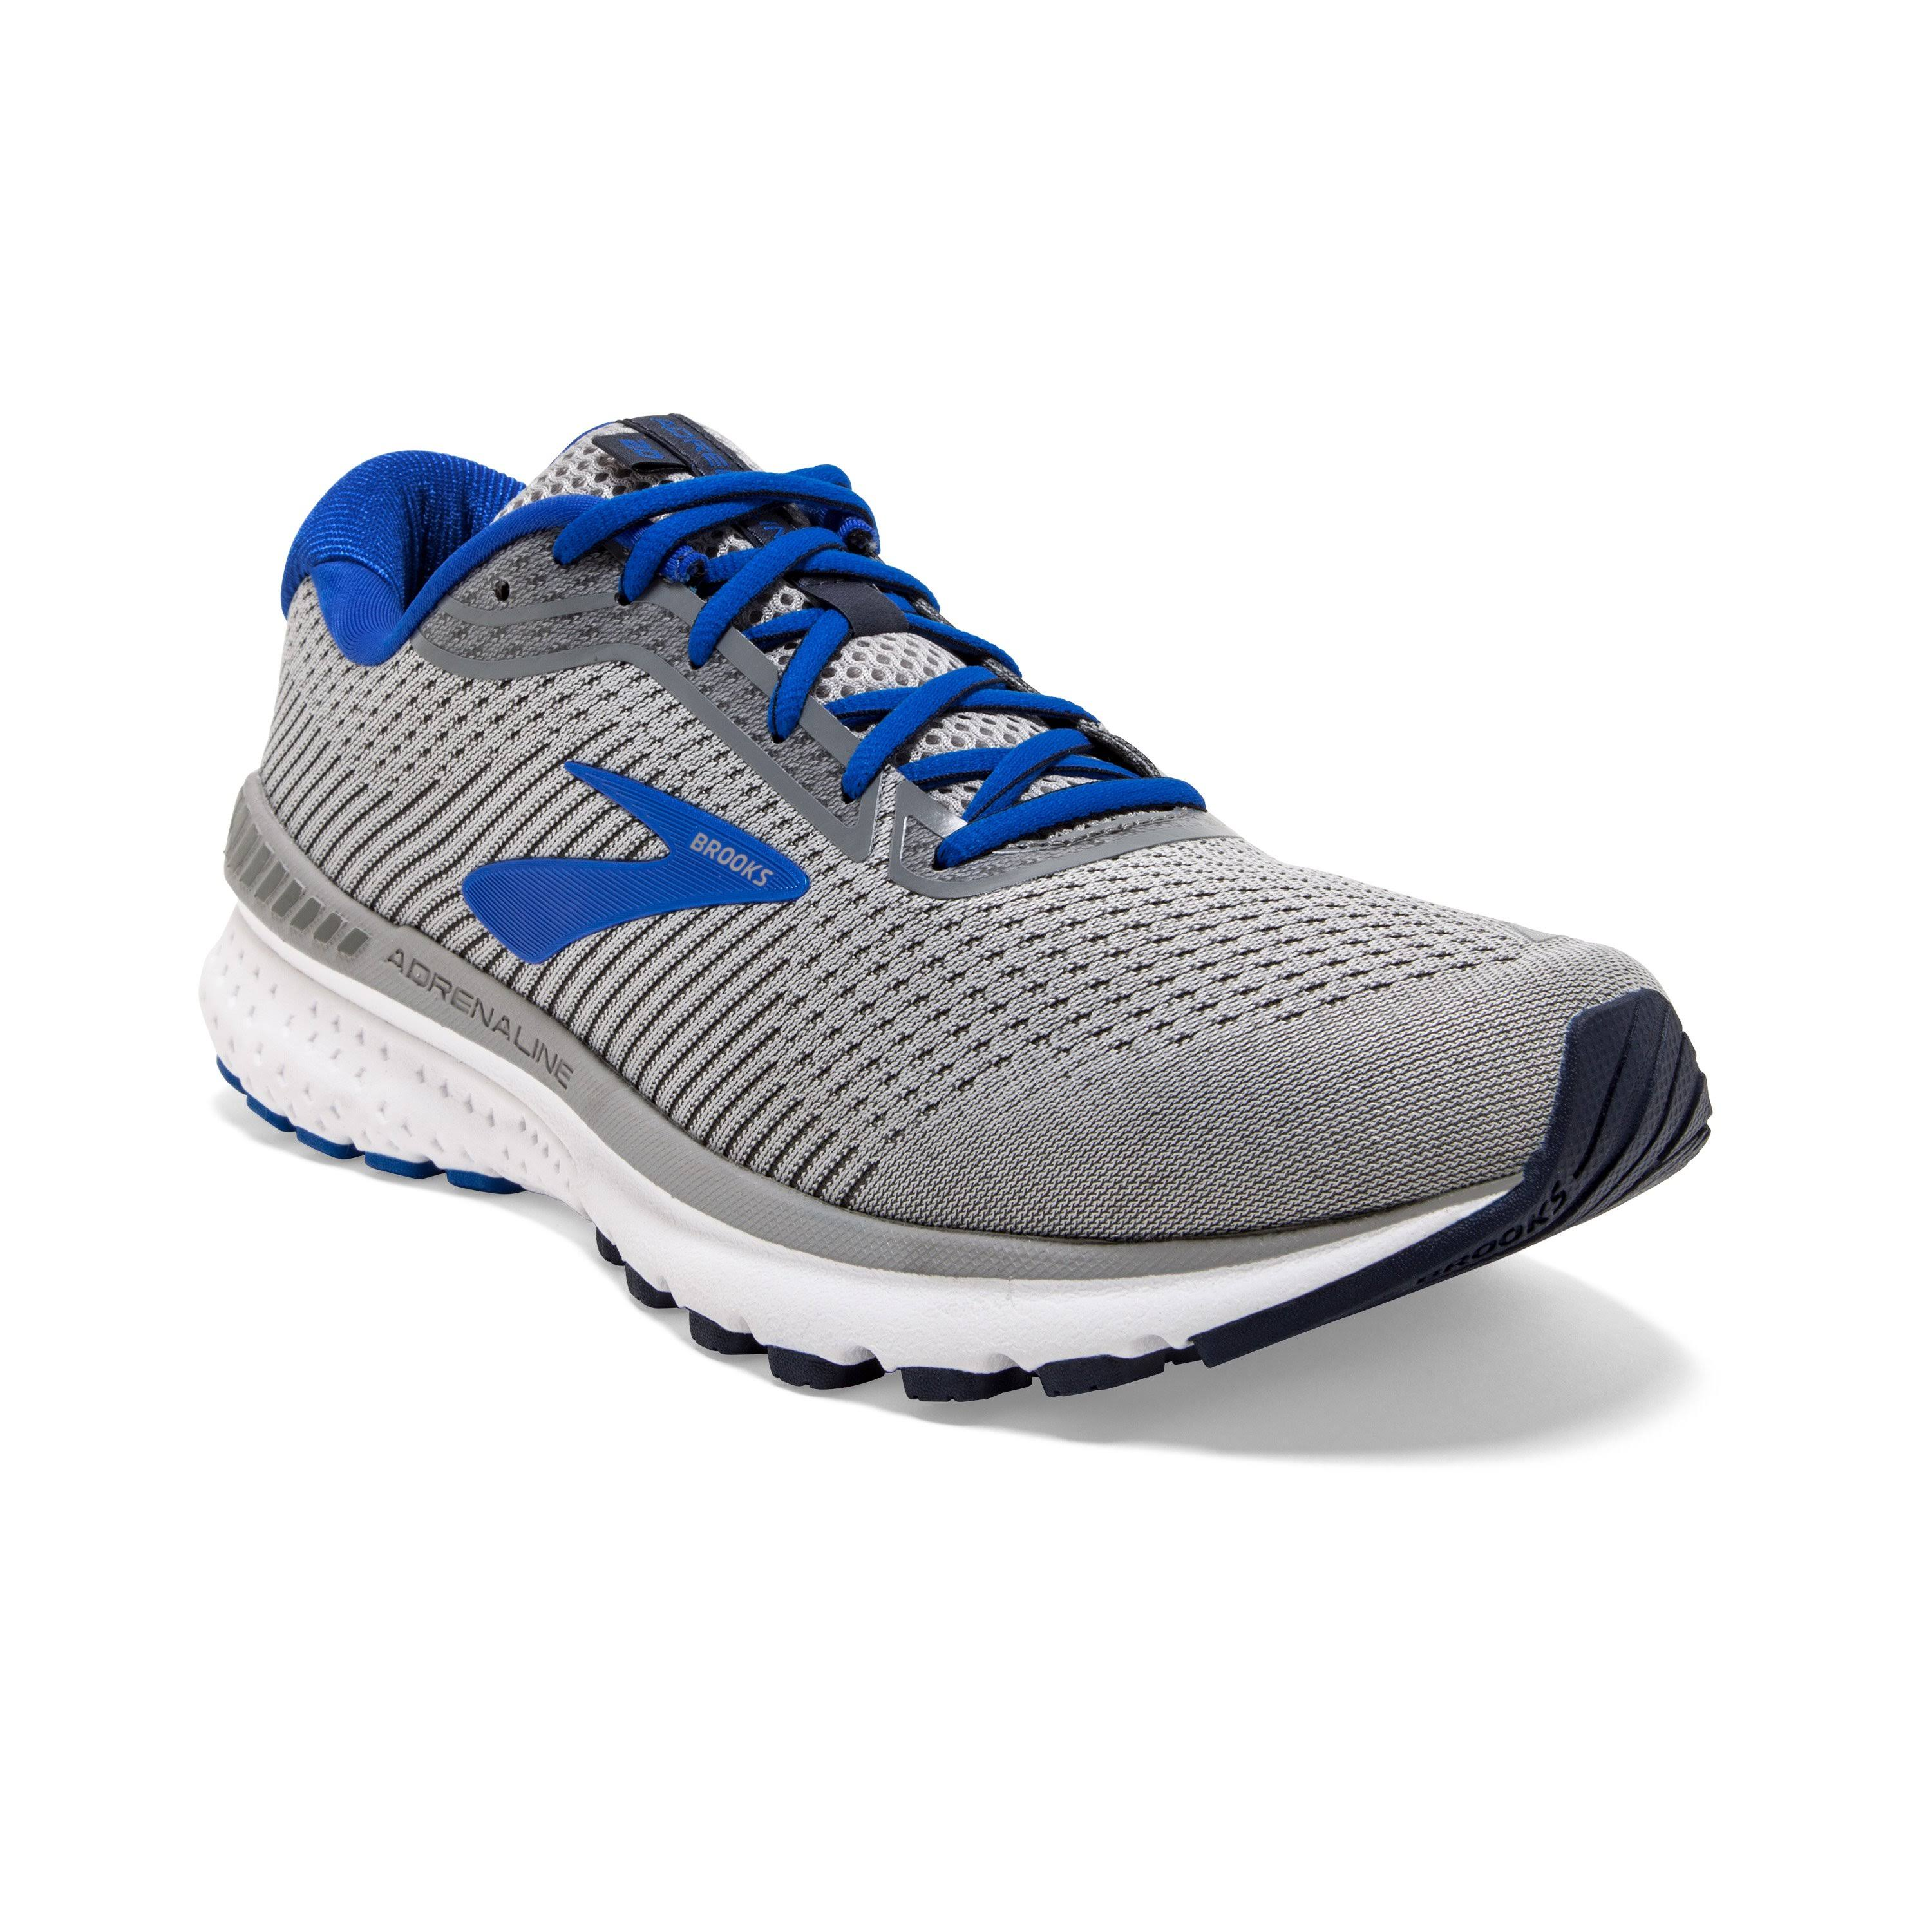 Brooks Adrenaline GTS 20 Men's Running Shoes Grey/Blue/Navy : 14 4E - Extra Wide